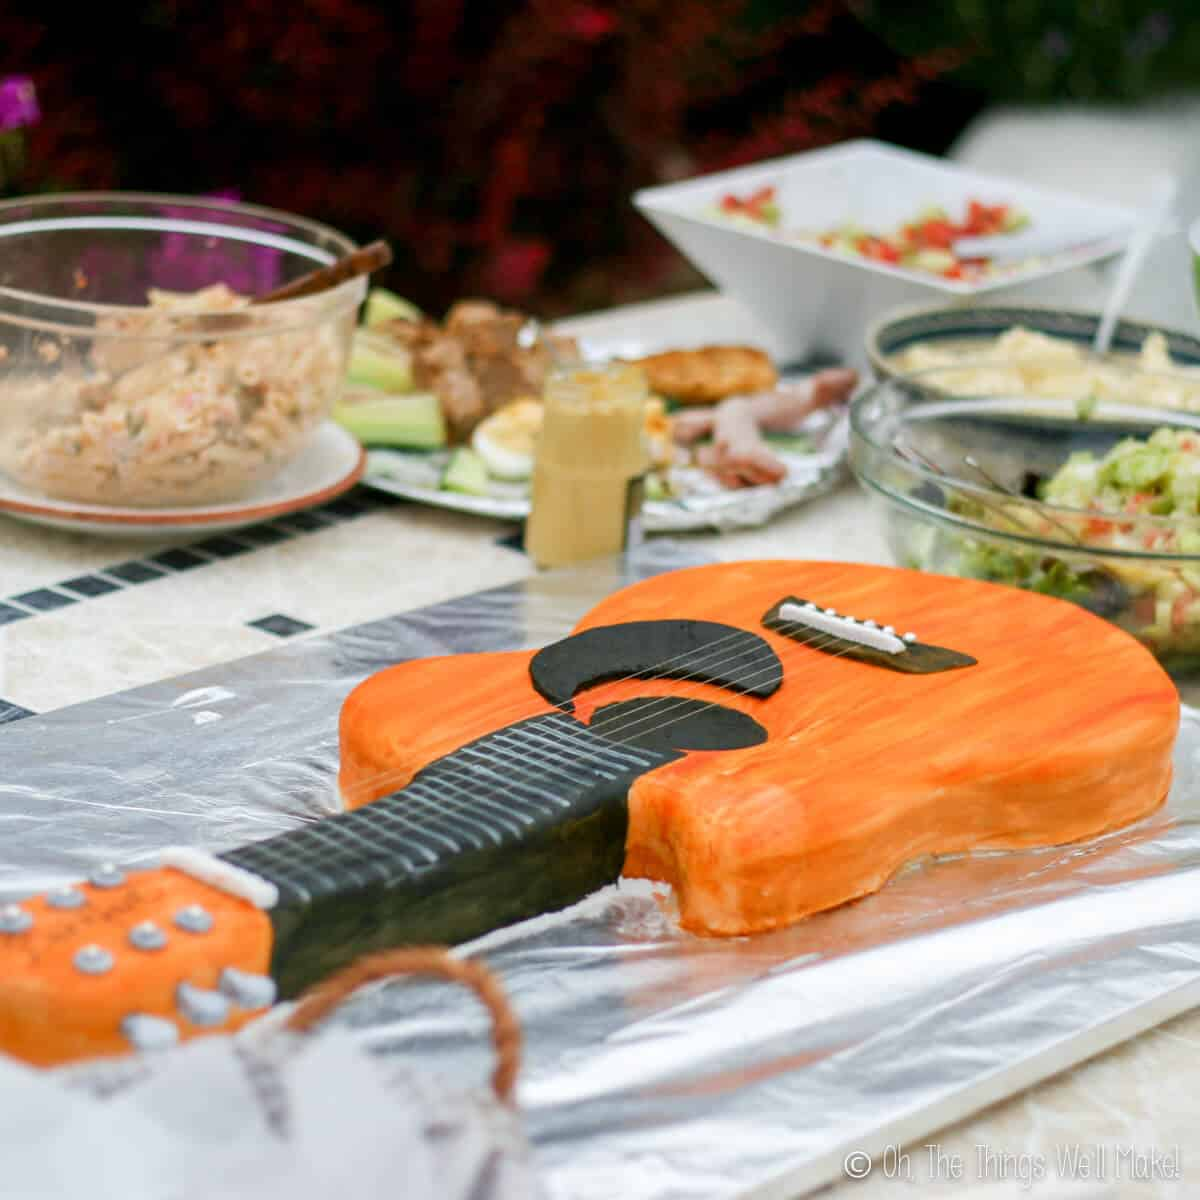 Fondant guitar cake displayed on table with other picnic foods